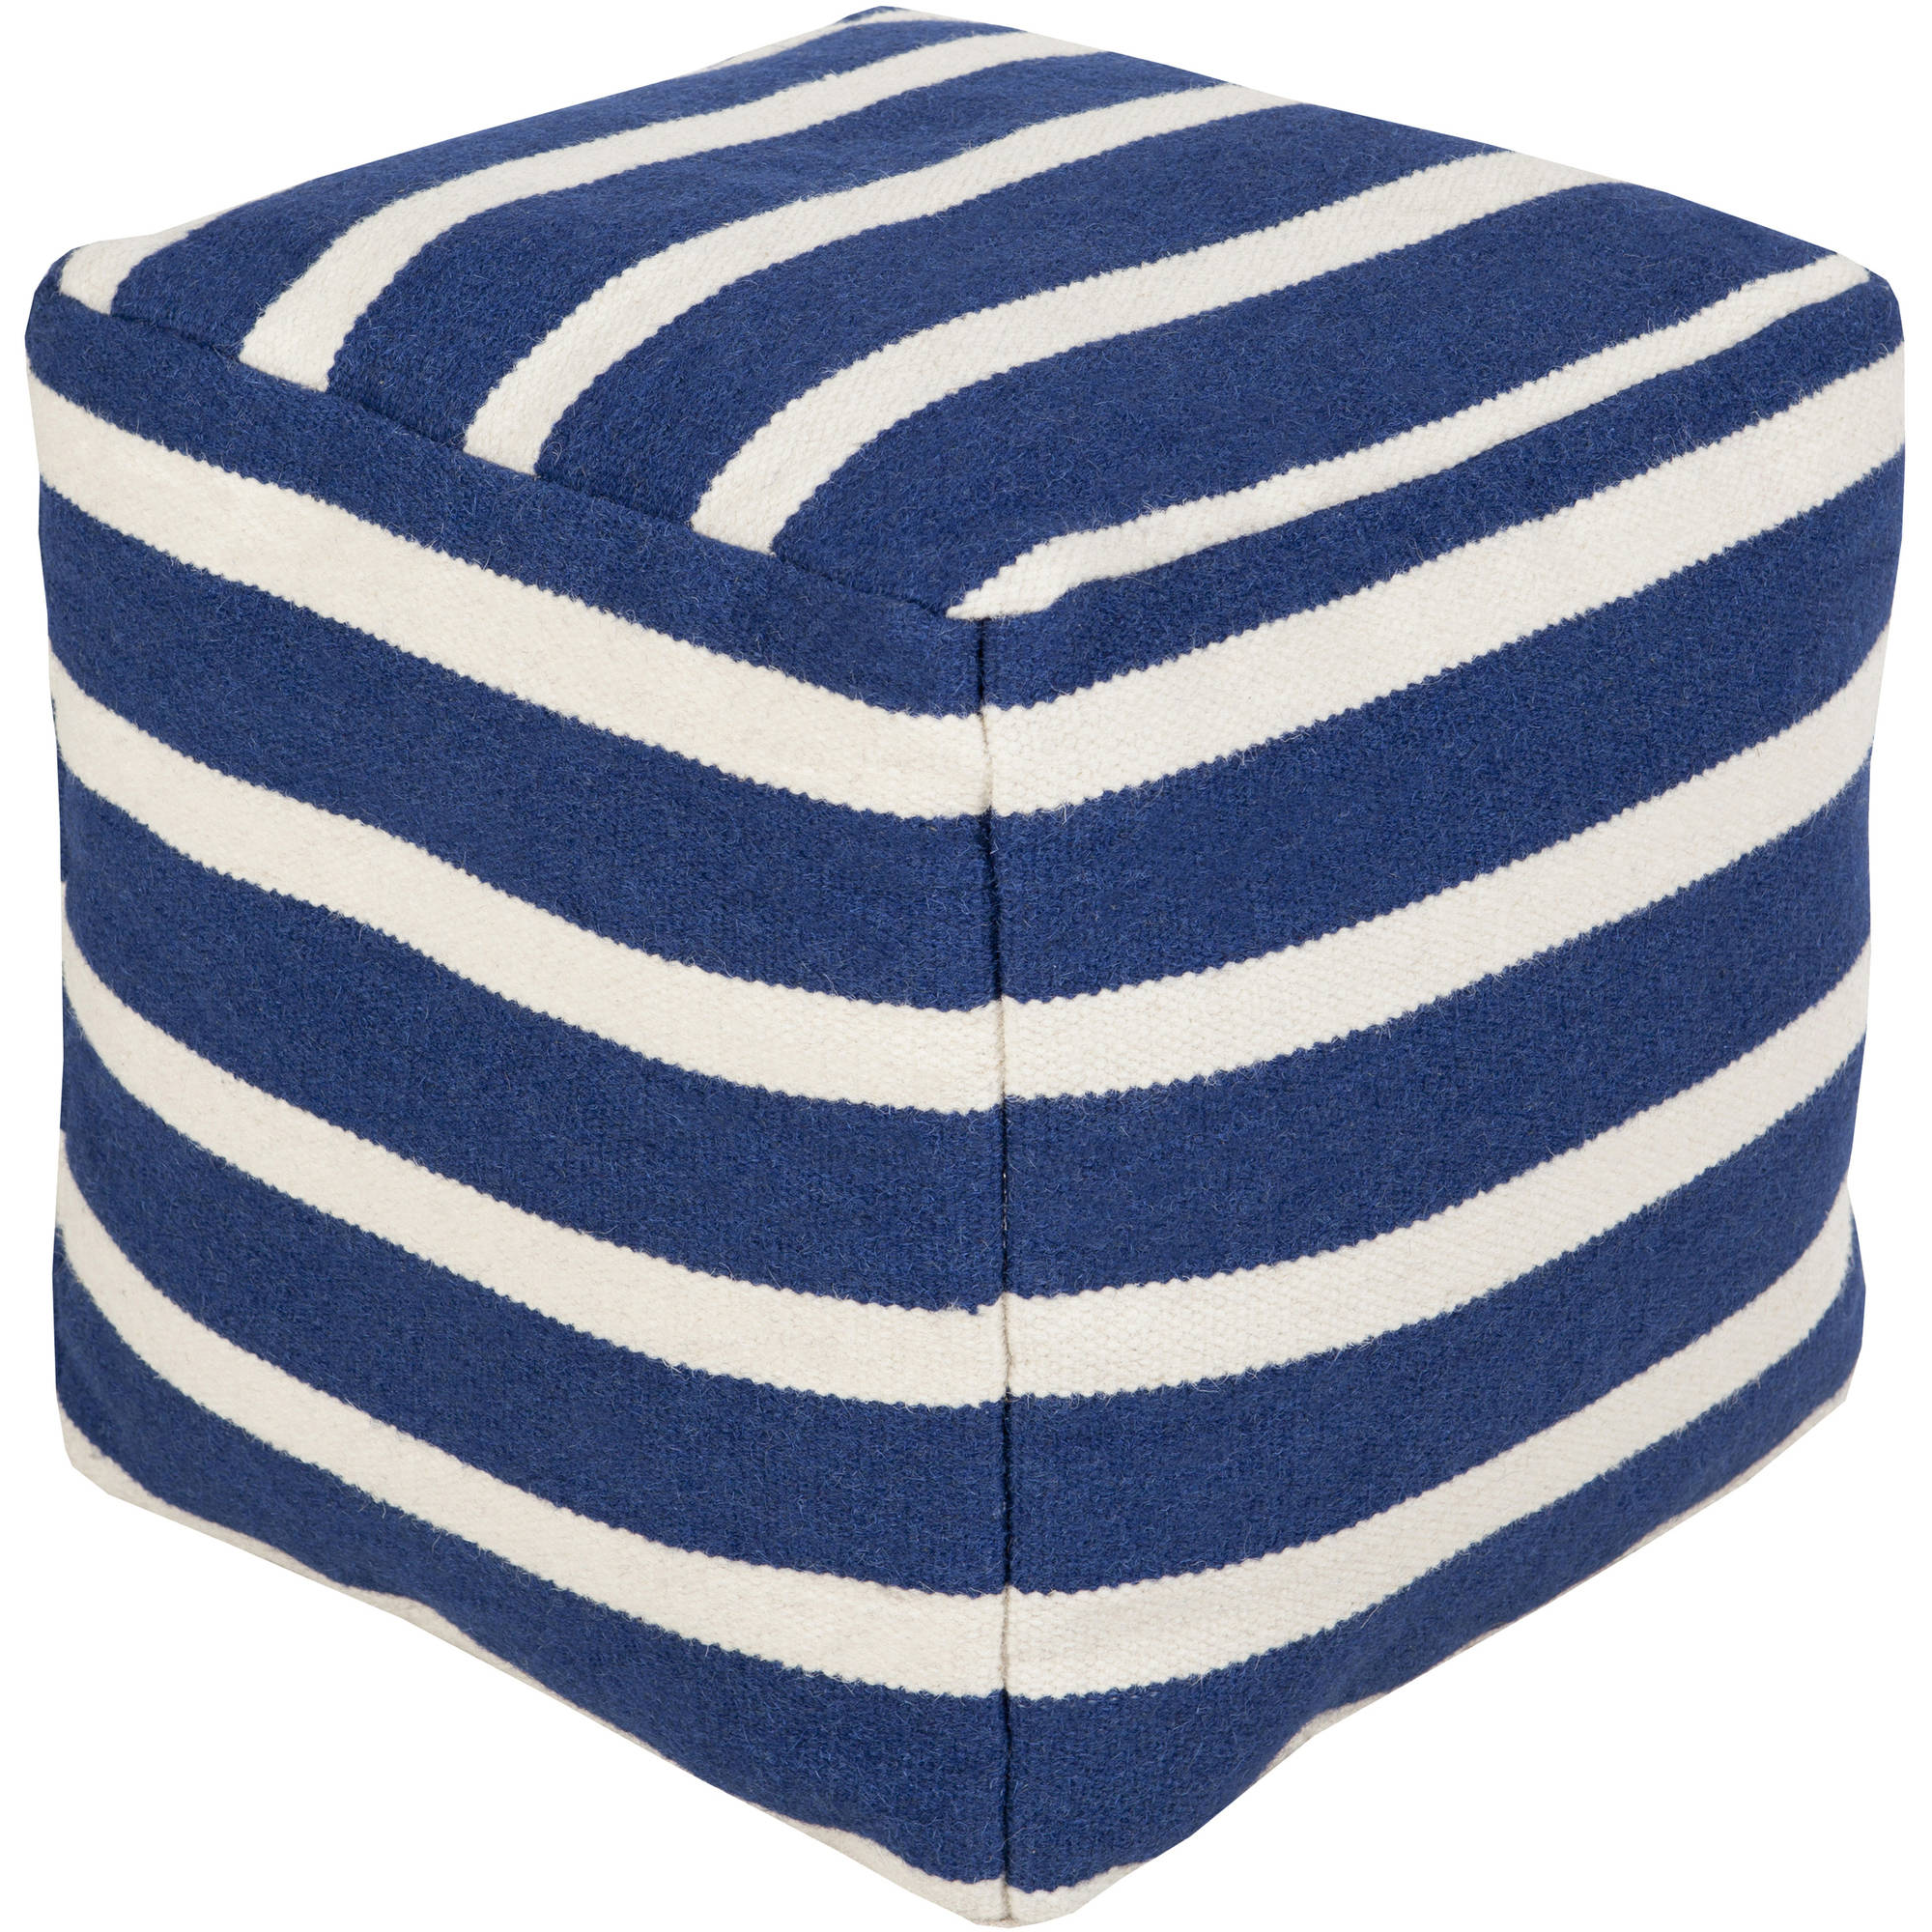 Libby Langdon Davenport Hand Made Stripes Wool Pouf